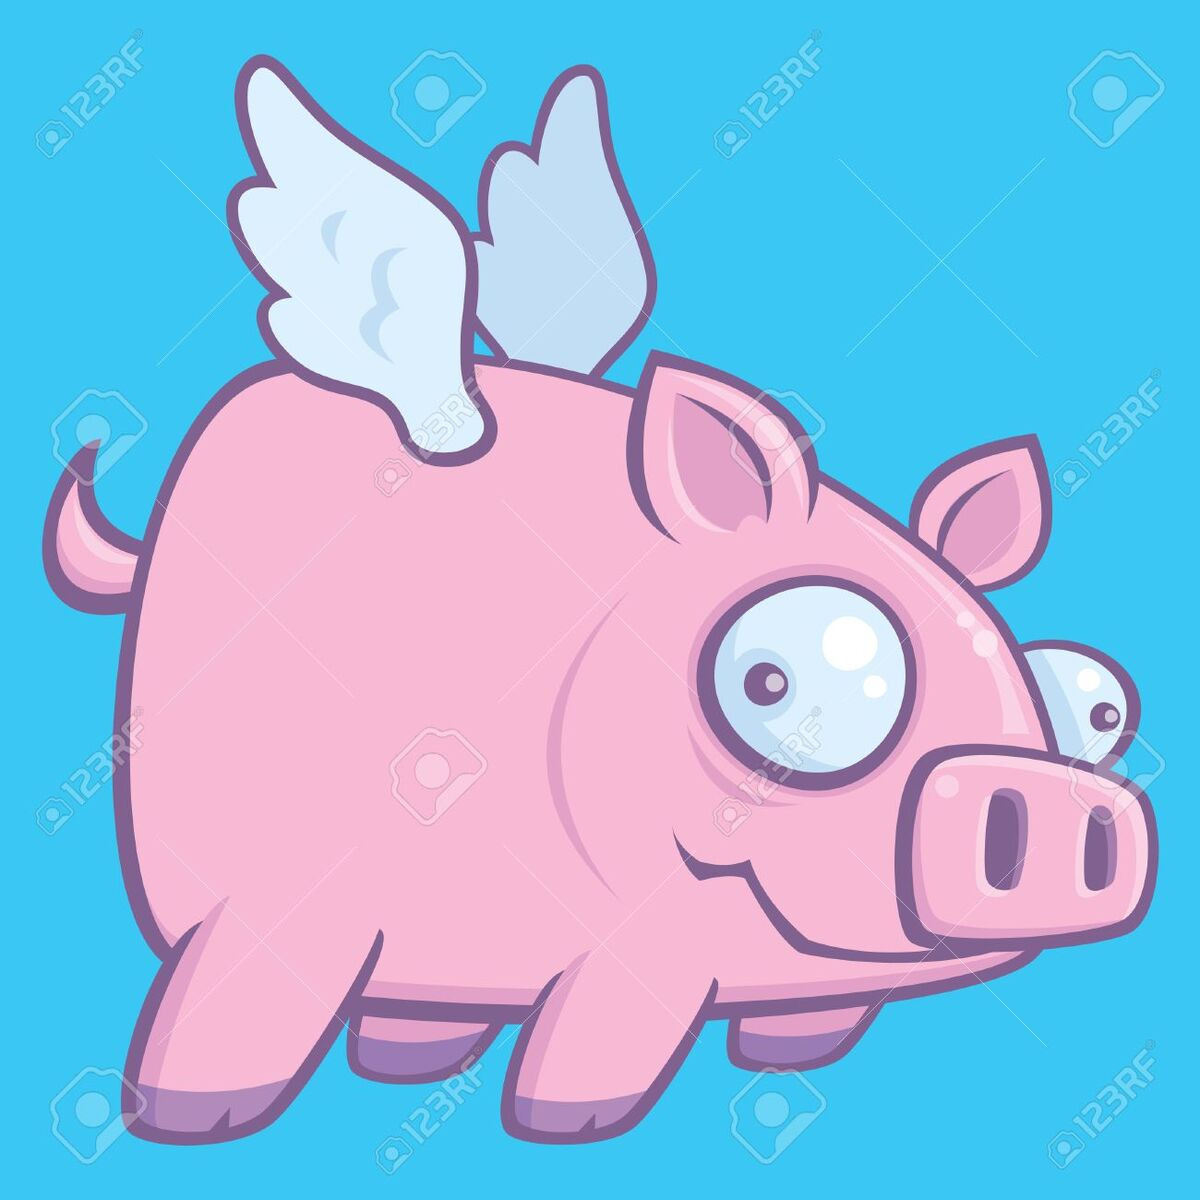 -flying-pig-illustrating-the-phrase-when-pigs-fly-.jpg